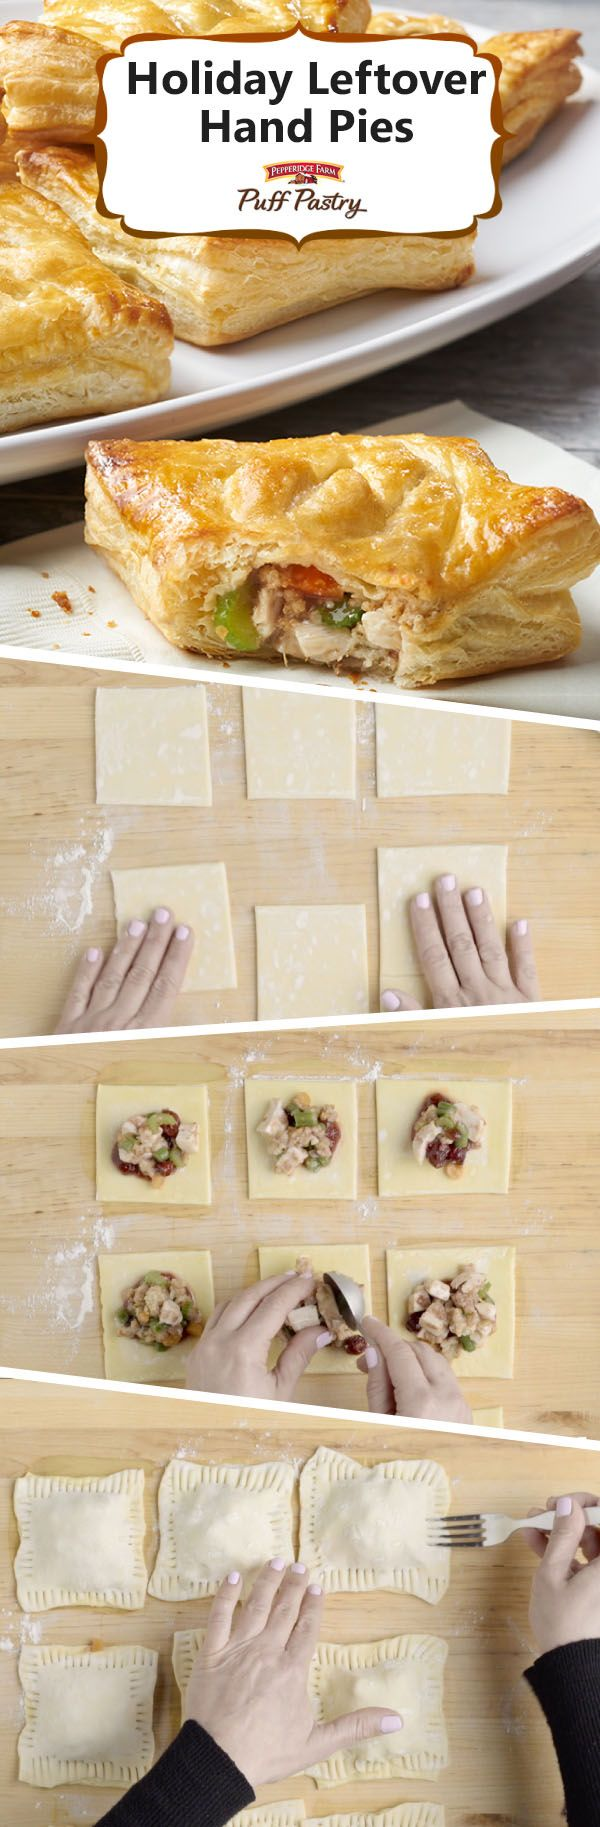 Pepperidge Farm Puff Pastry Holiday Leftover Hand Pies Recipe. Transform your…